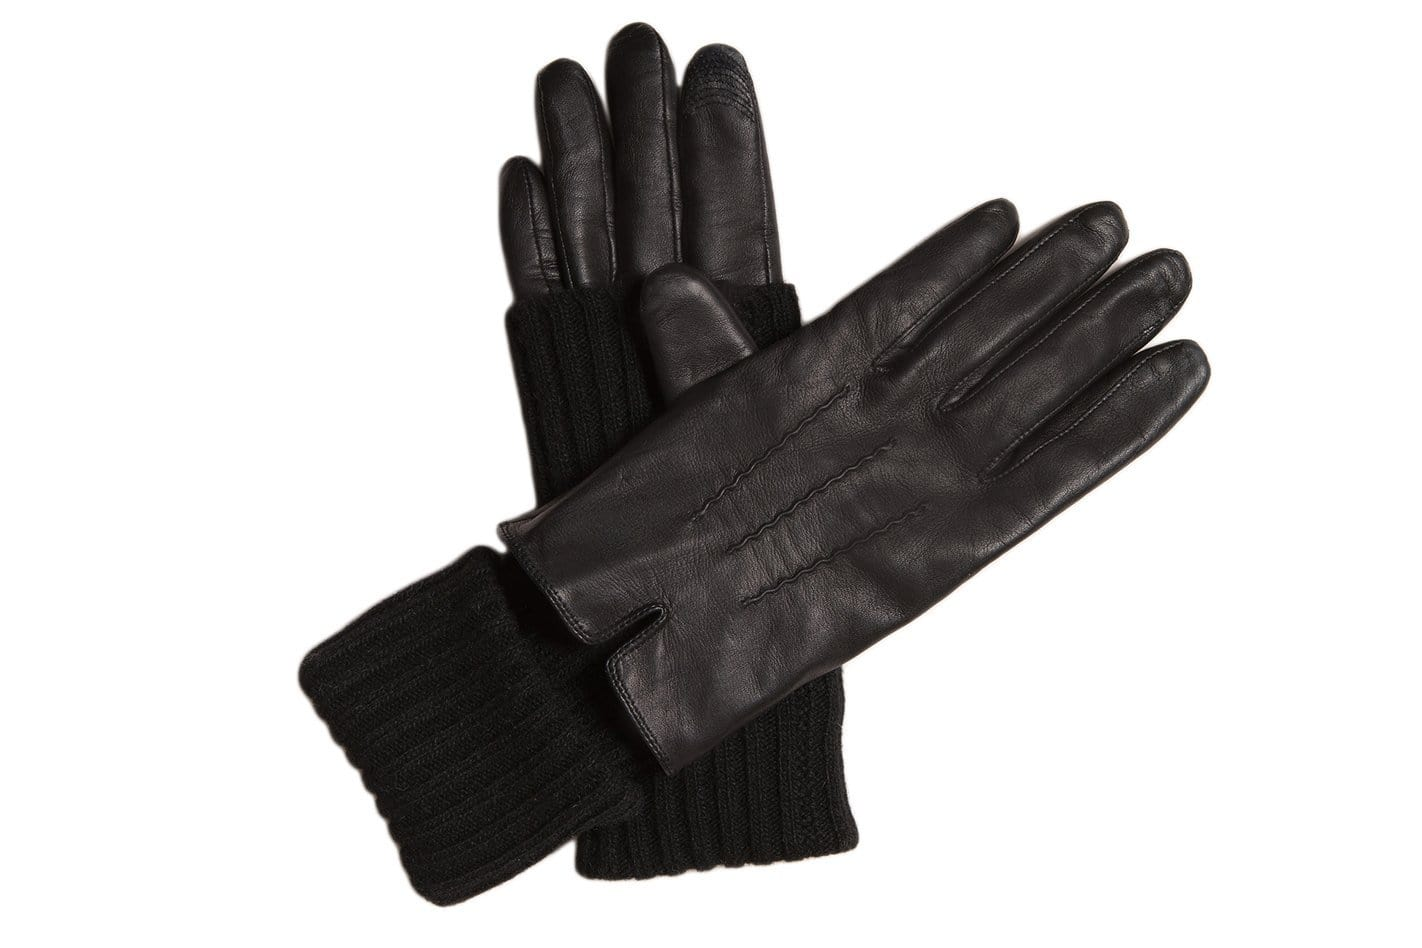 CARMEL LADIES LEATHER GLOVES WOMENS ACCESSORIES SOIA & KYO